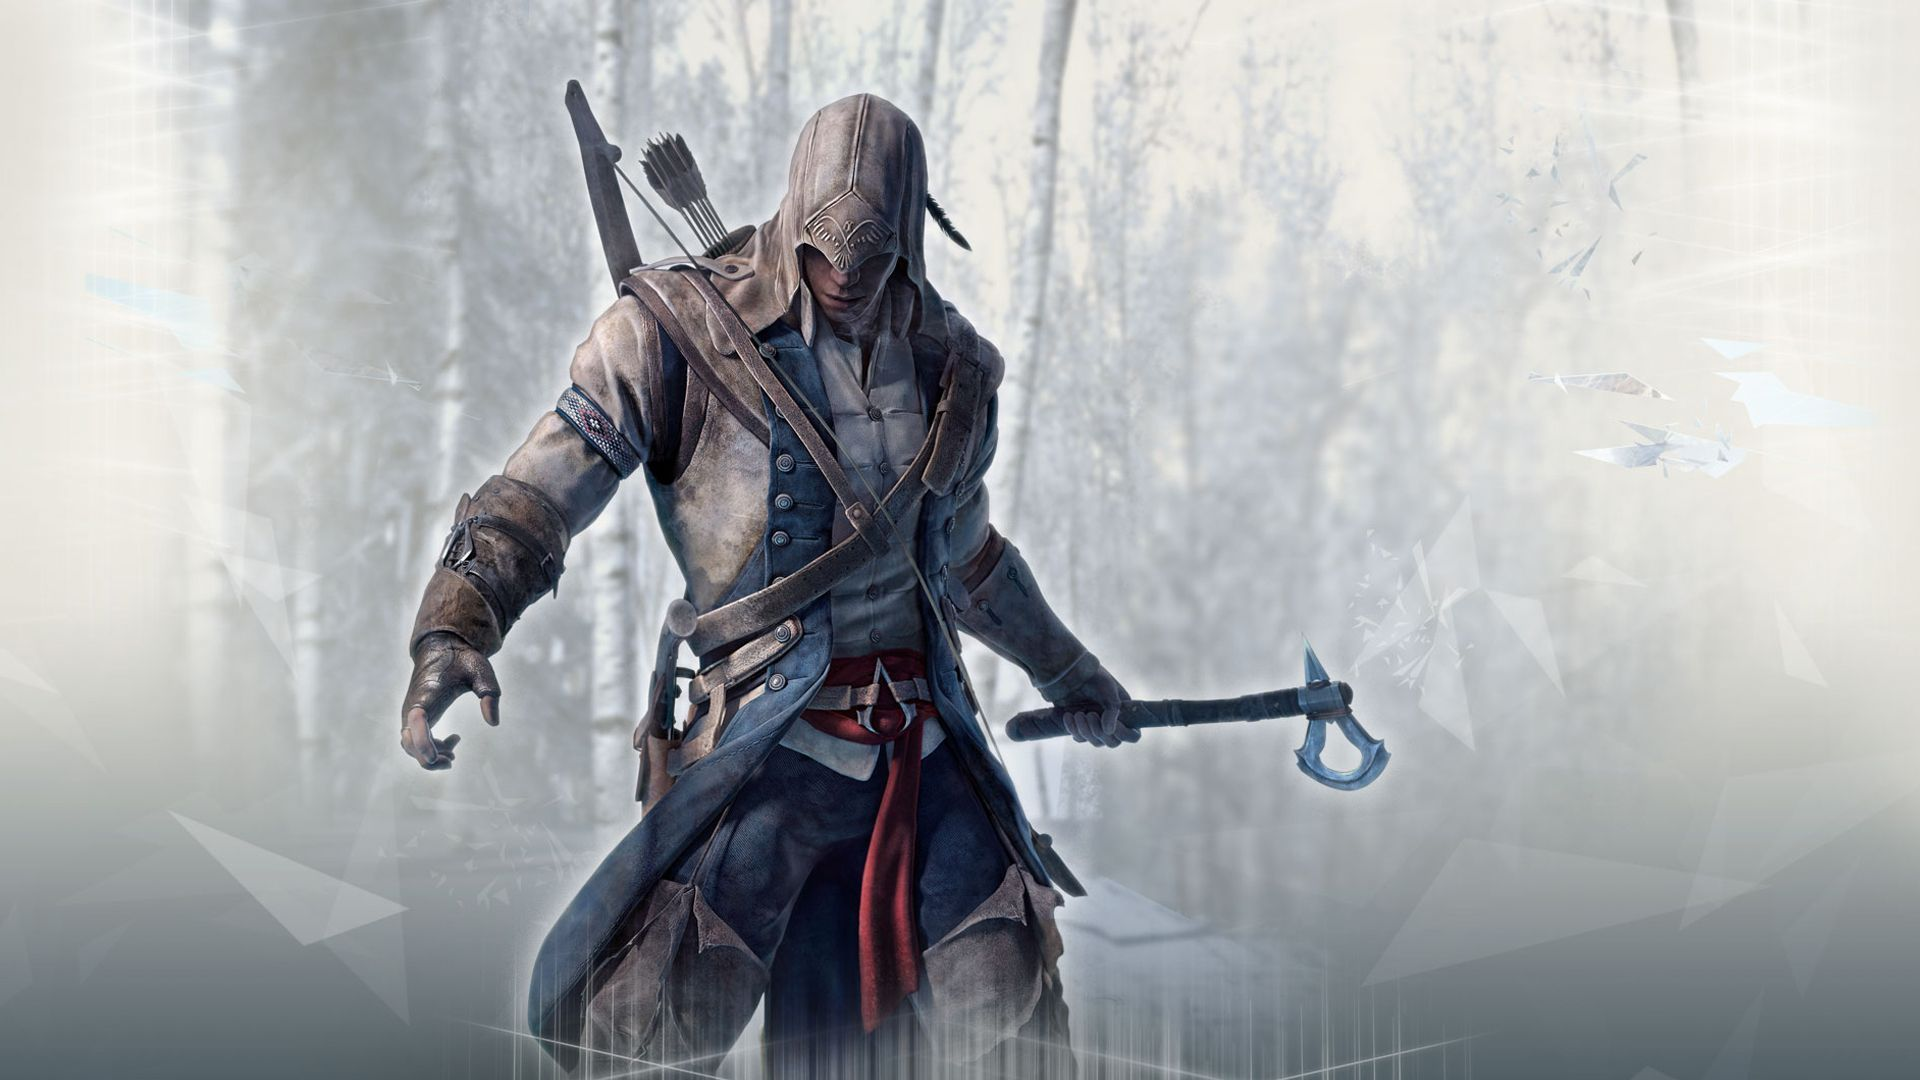 Connor kenway assassin039s creed iii wide wallpaper 24915g assassins creed connor wallpaper by sprinklesprankles on voltagebd Choice Image